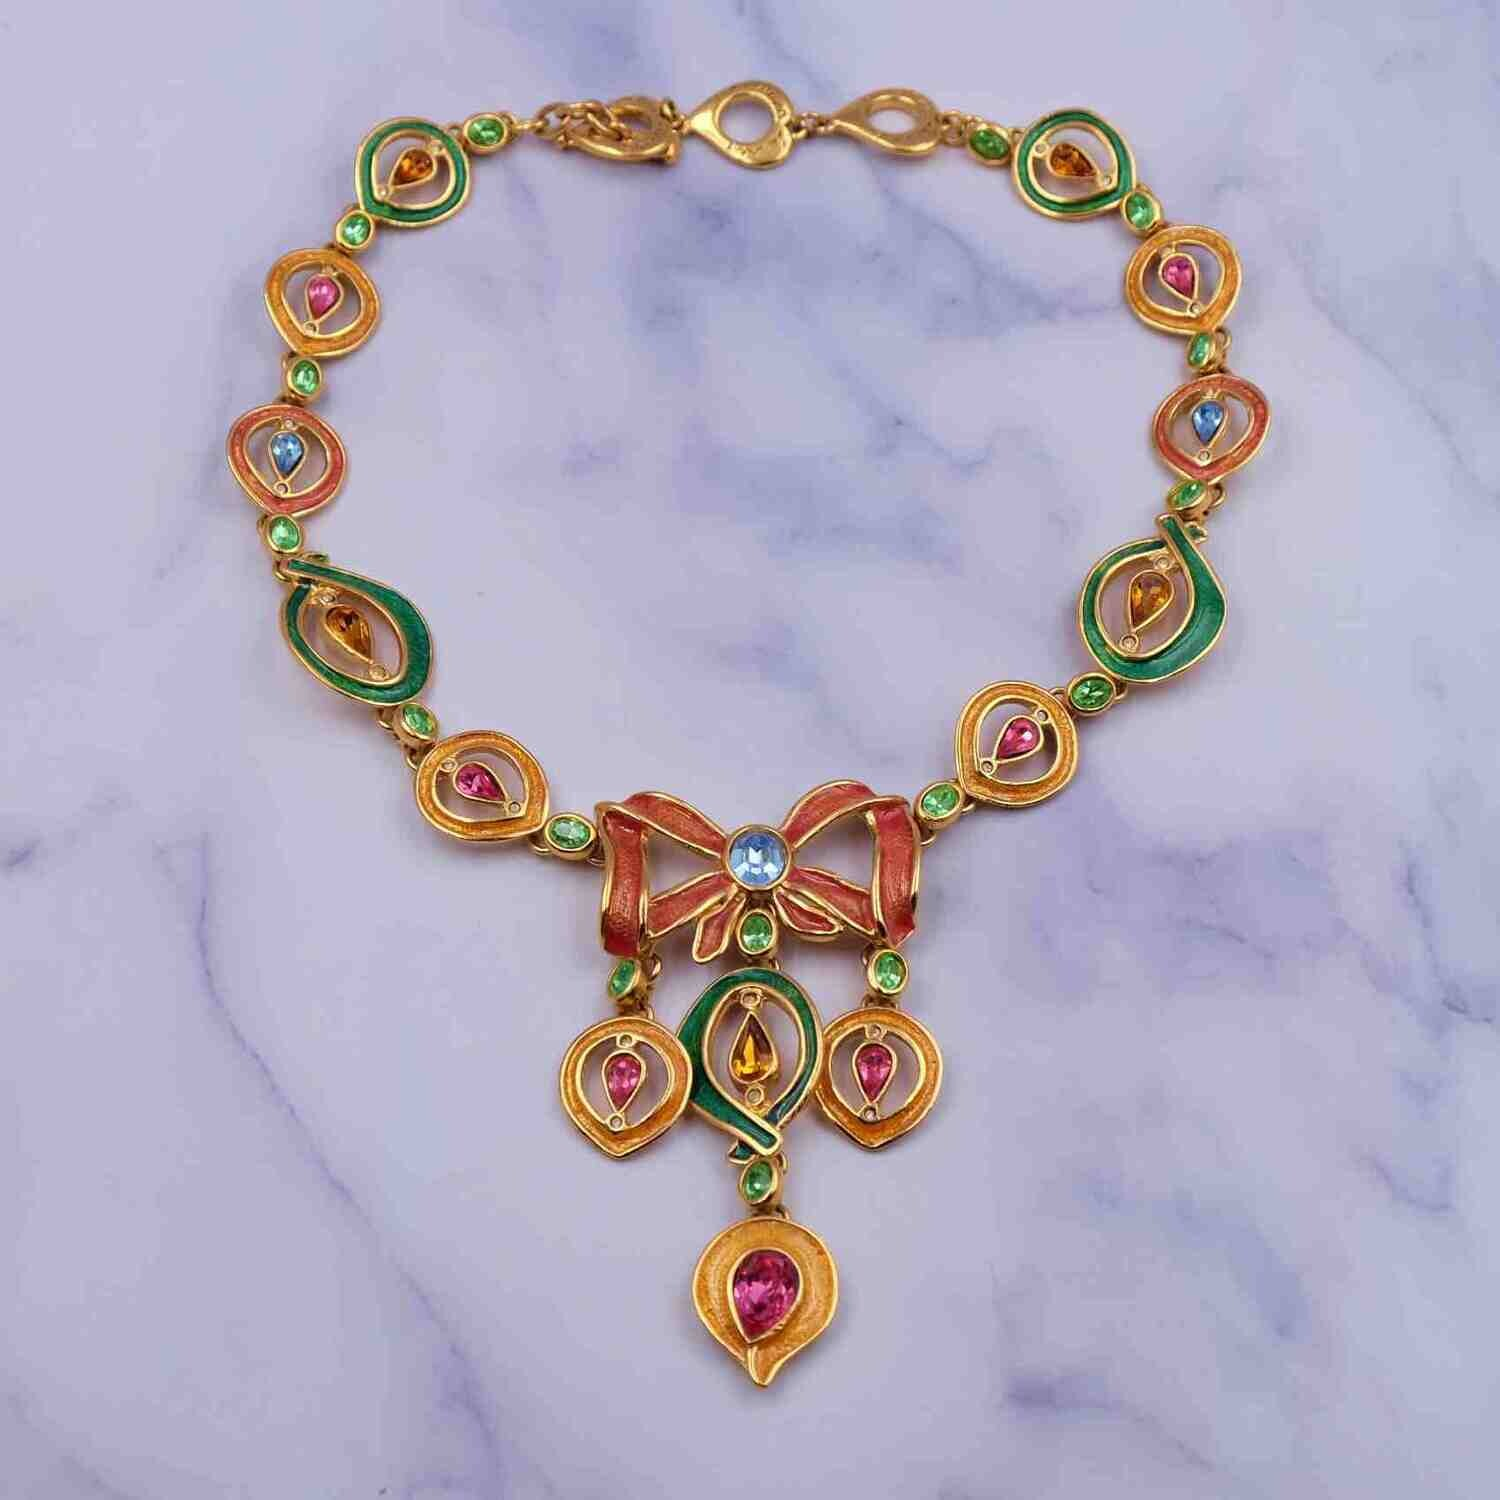 Very Rare Collectible Yves Saint Laurent YSL Enamel Necklace 1990's